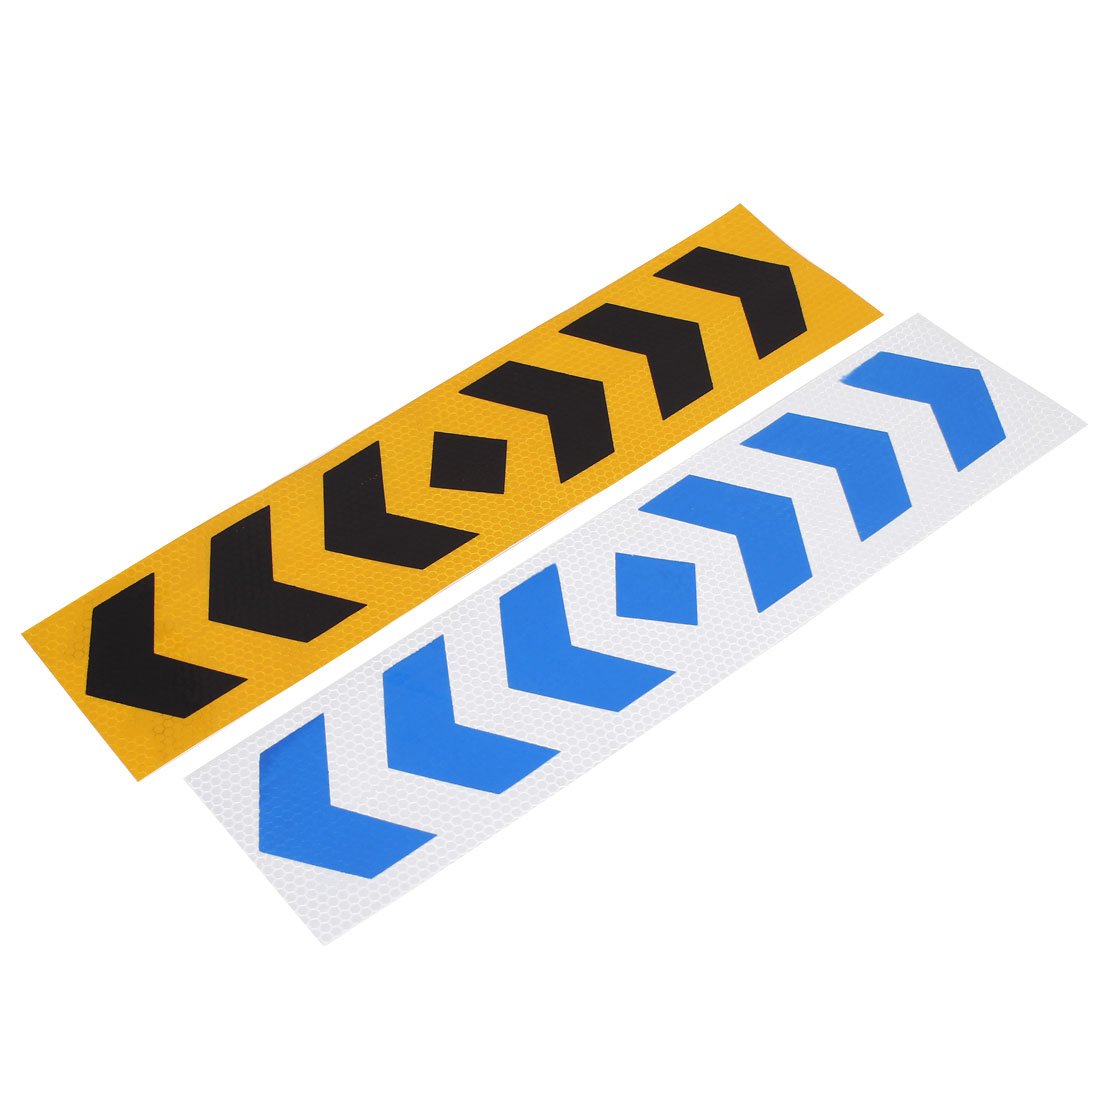 2pcs 40cm Long Arrows Pattern Self Adhesive Car Safety Reflective Warning Sign Stickers Decal